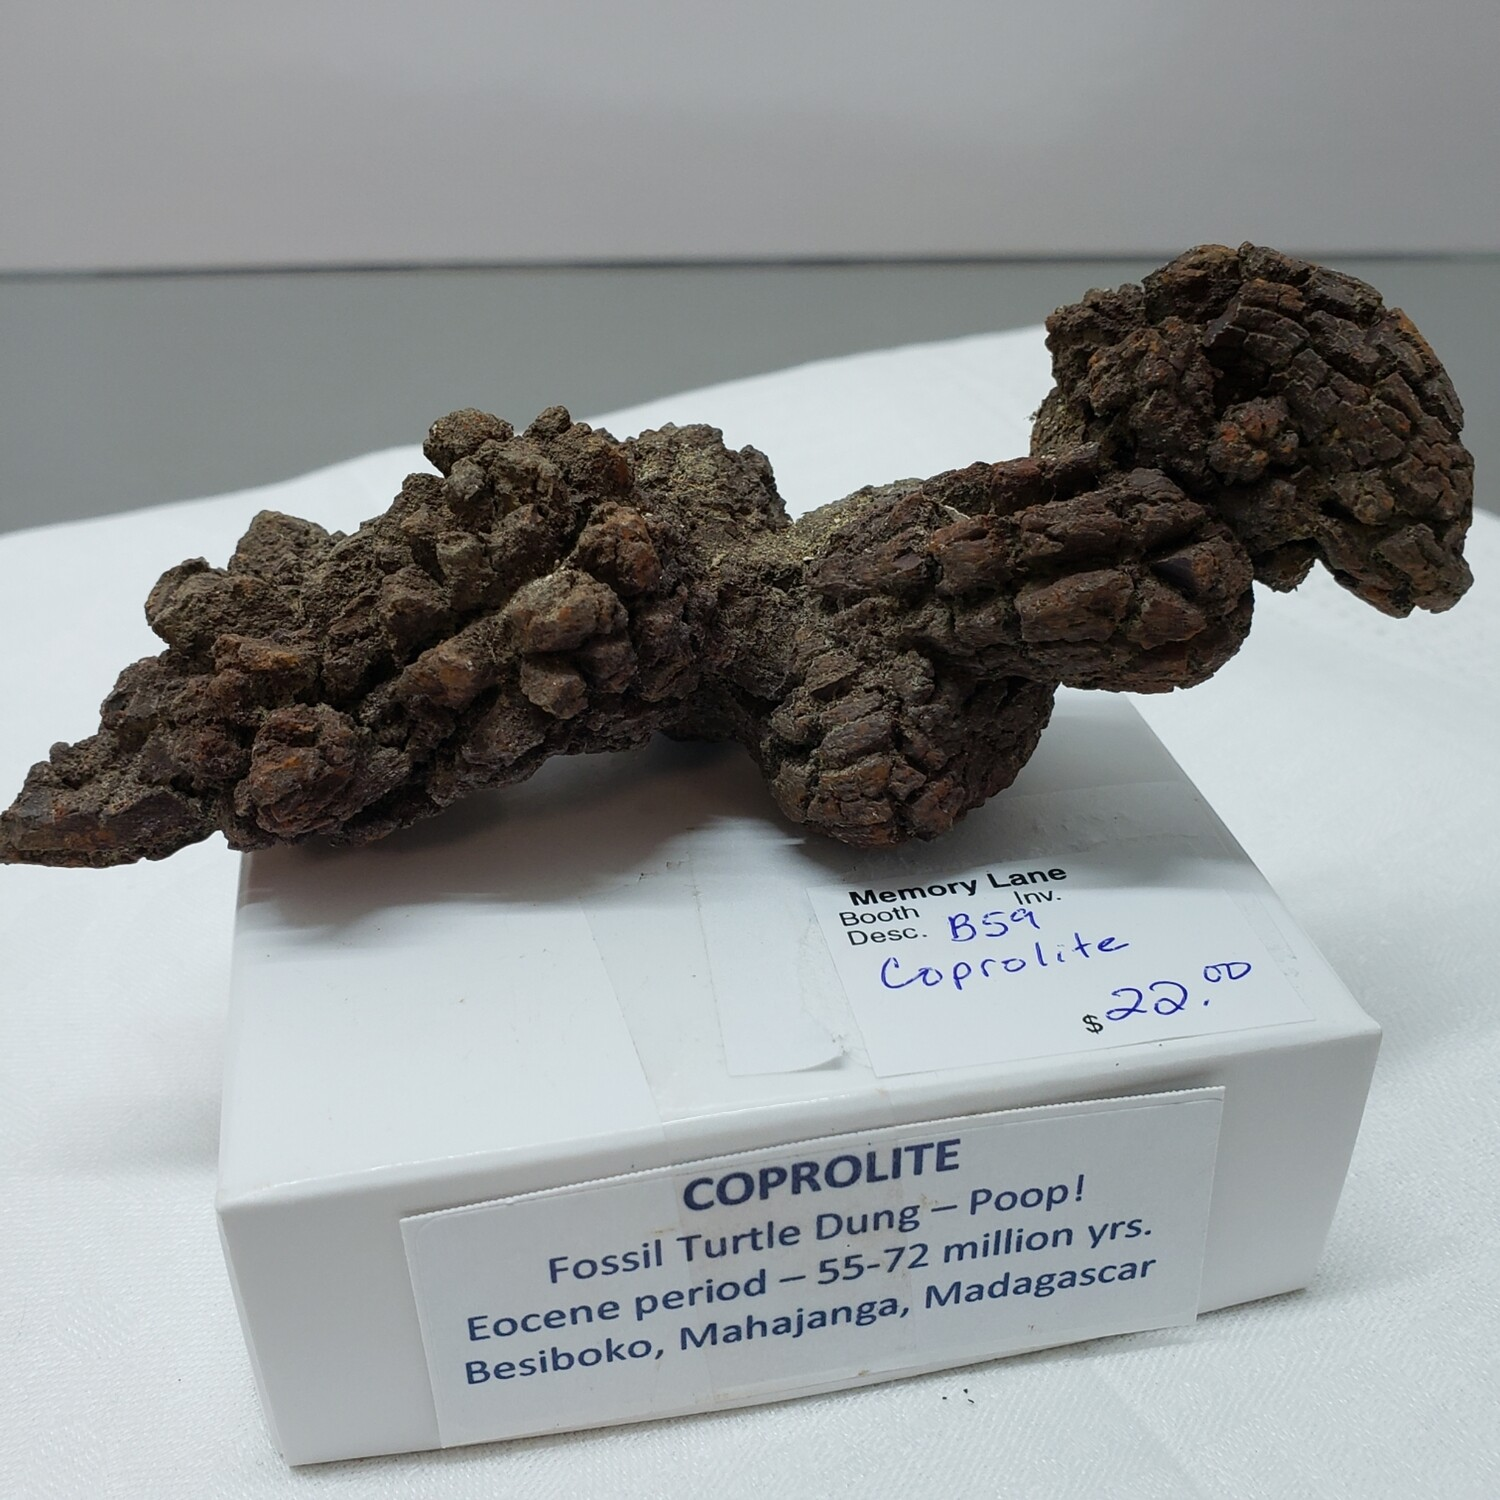 Fossil turtle dung - poop